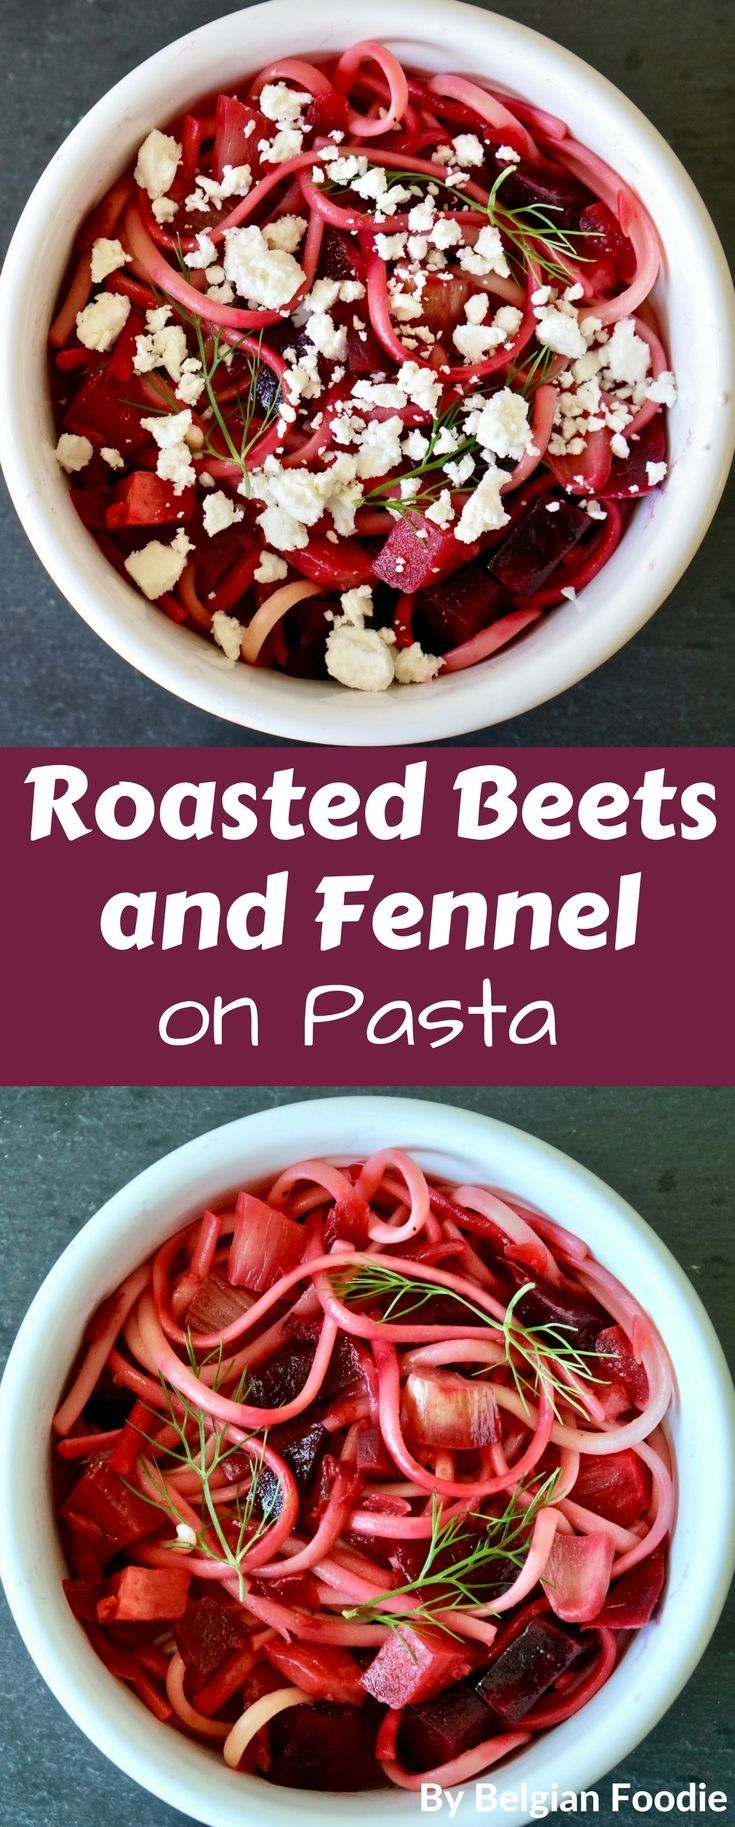 Roasted Beets And Fennel On Pasta